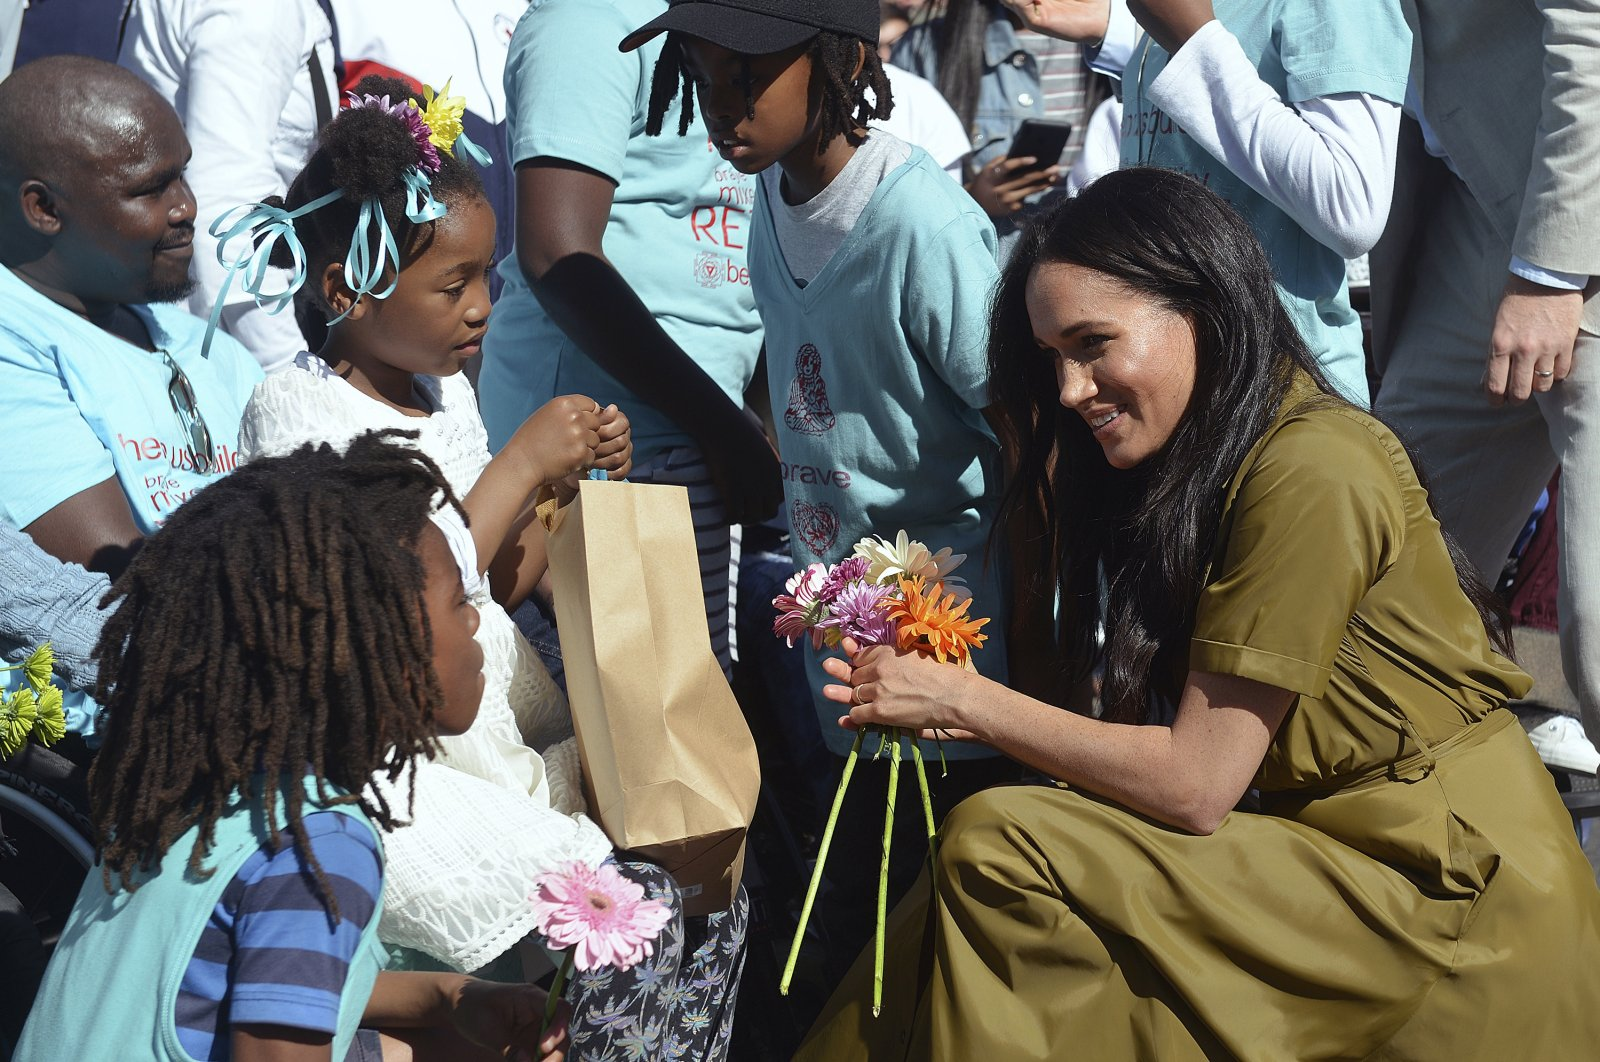 Meghan, the Duchess of Sussex, talks to children during a walkabout in Bo-Kaap, a heritage site, in Cape Town, South Africa, Sept, 24, 2019. (AP Photo)